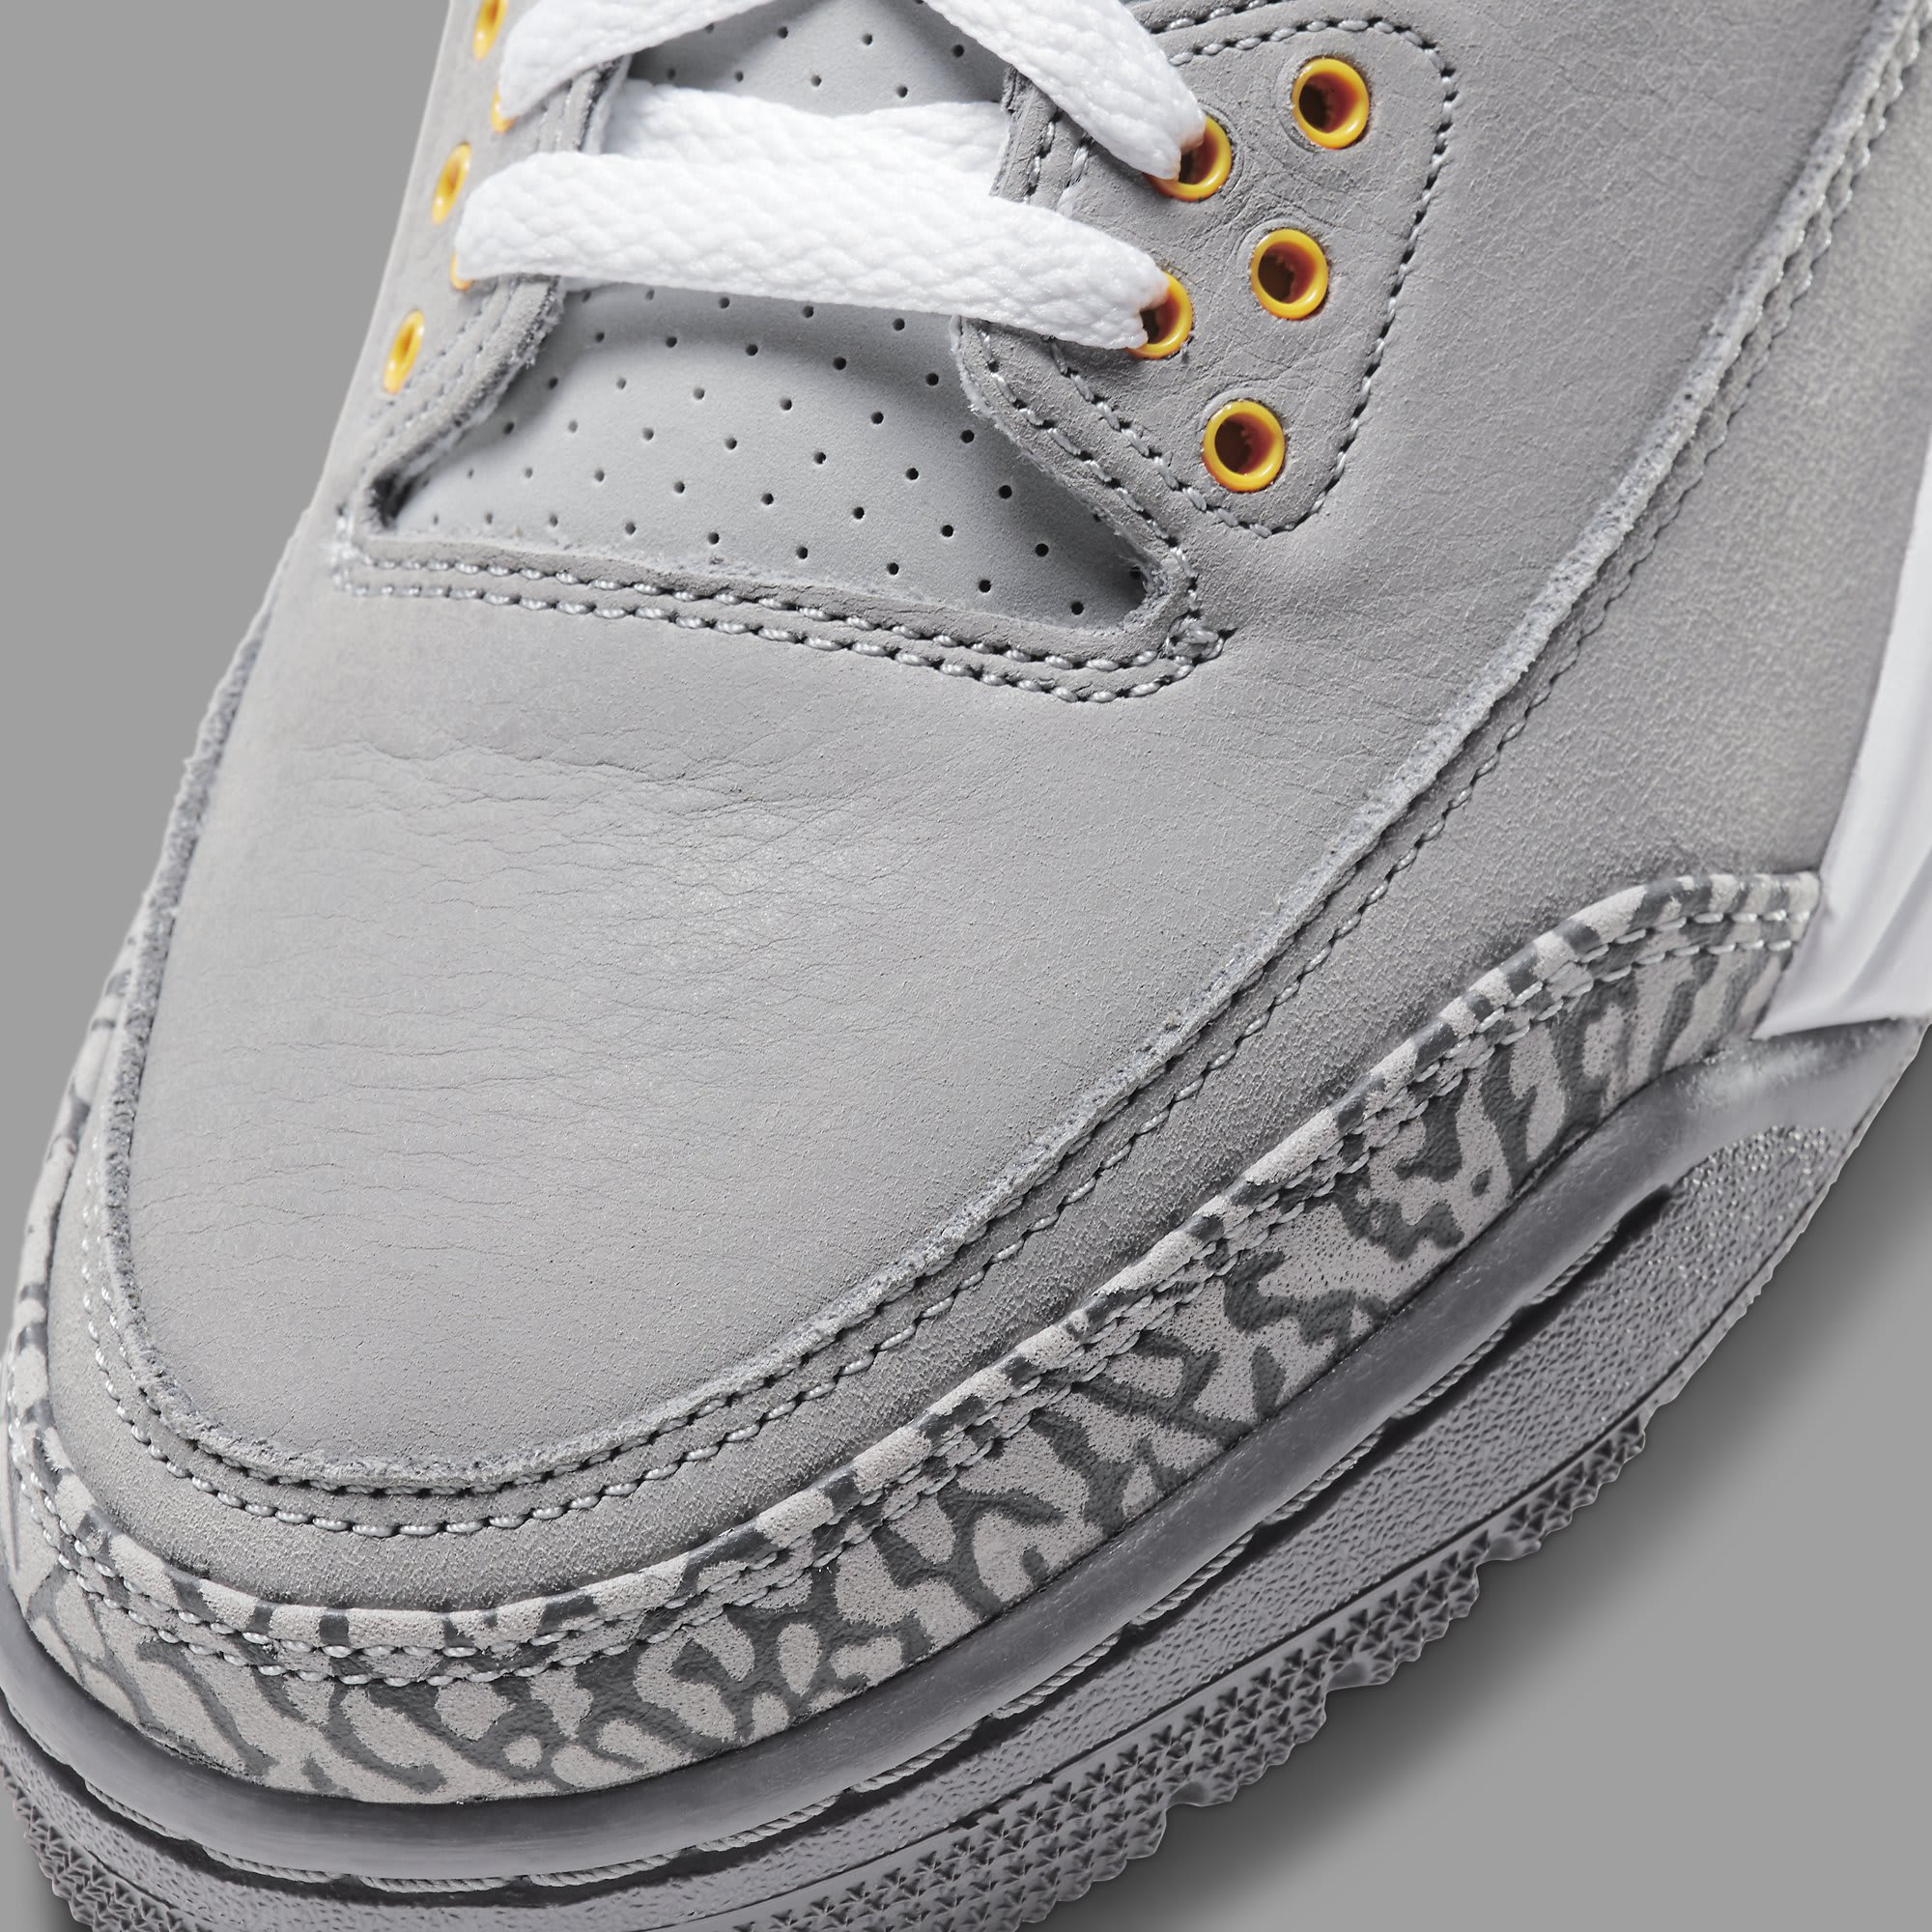 Air Jordan 3 Retro 'Cool Grey' 2021 CT8532-012 Toe